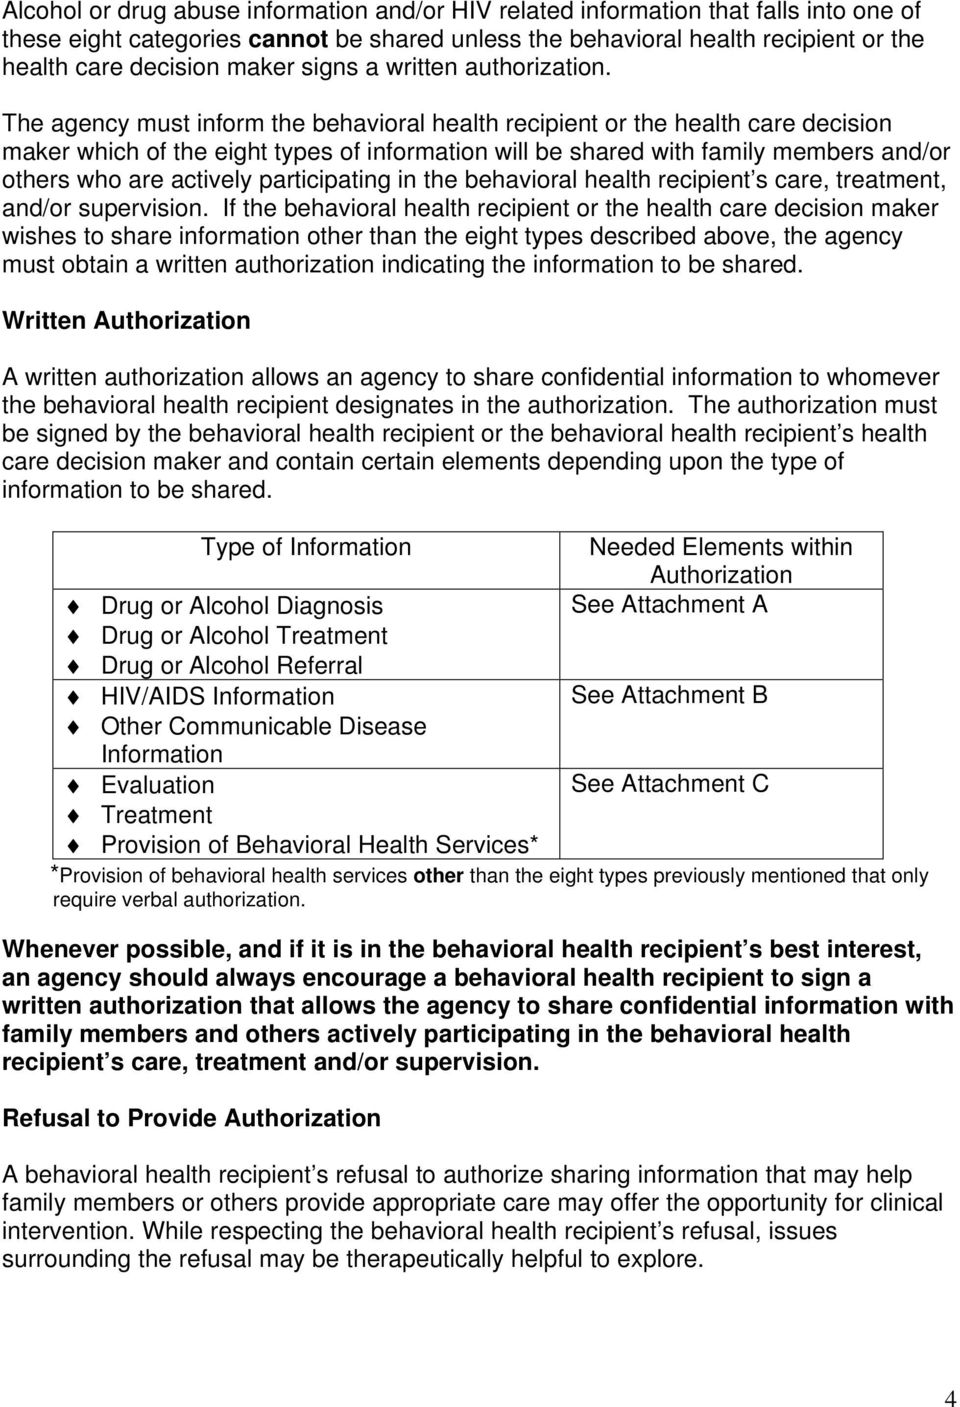 The agency must inform the behavioral health recipient or the health care decision maker which of the eight types of information will be shared with family members and/or others who are actively